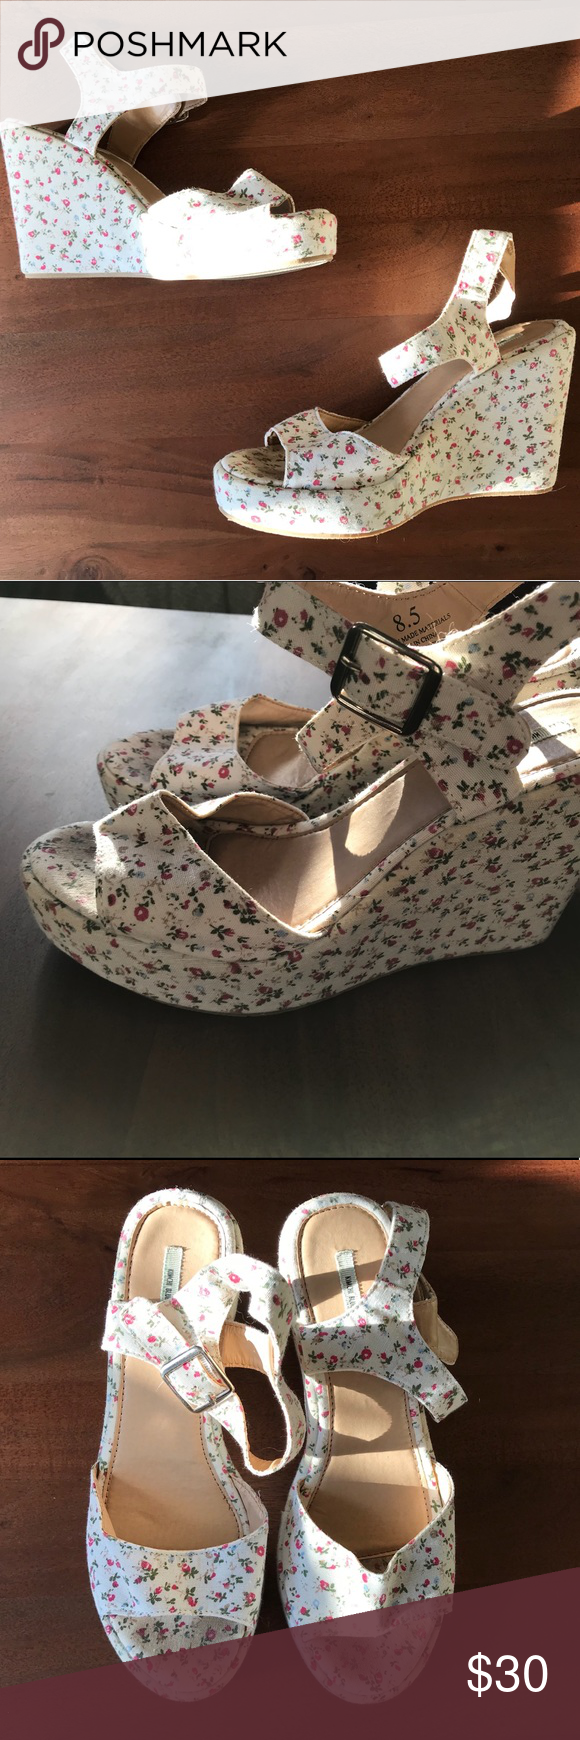 23395f6b8ce Urban Outfitters Flower Wedge Heels 8.5 Good condition Urban Outfitters  Shoes Wedges